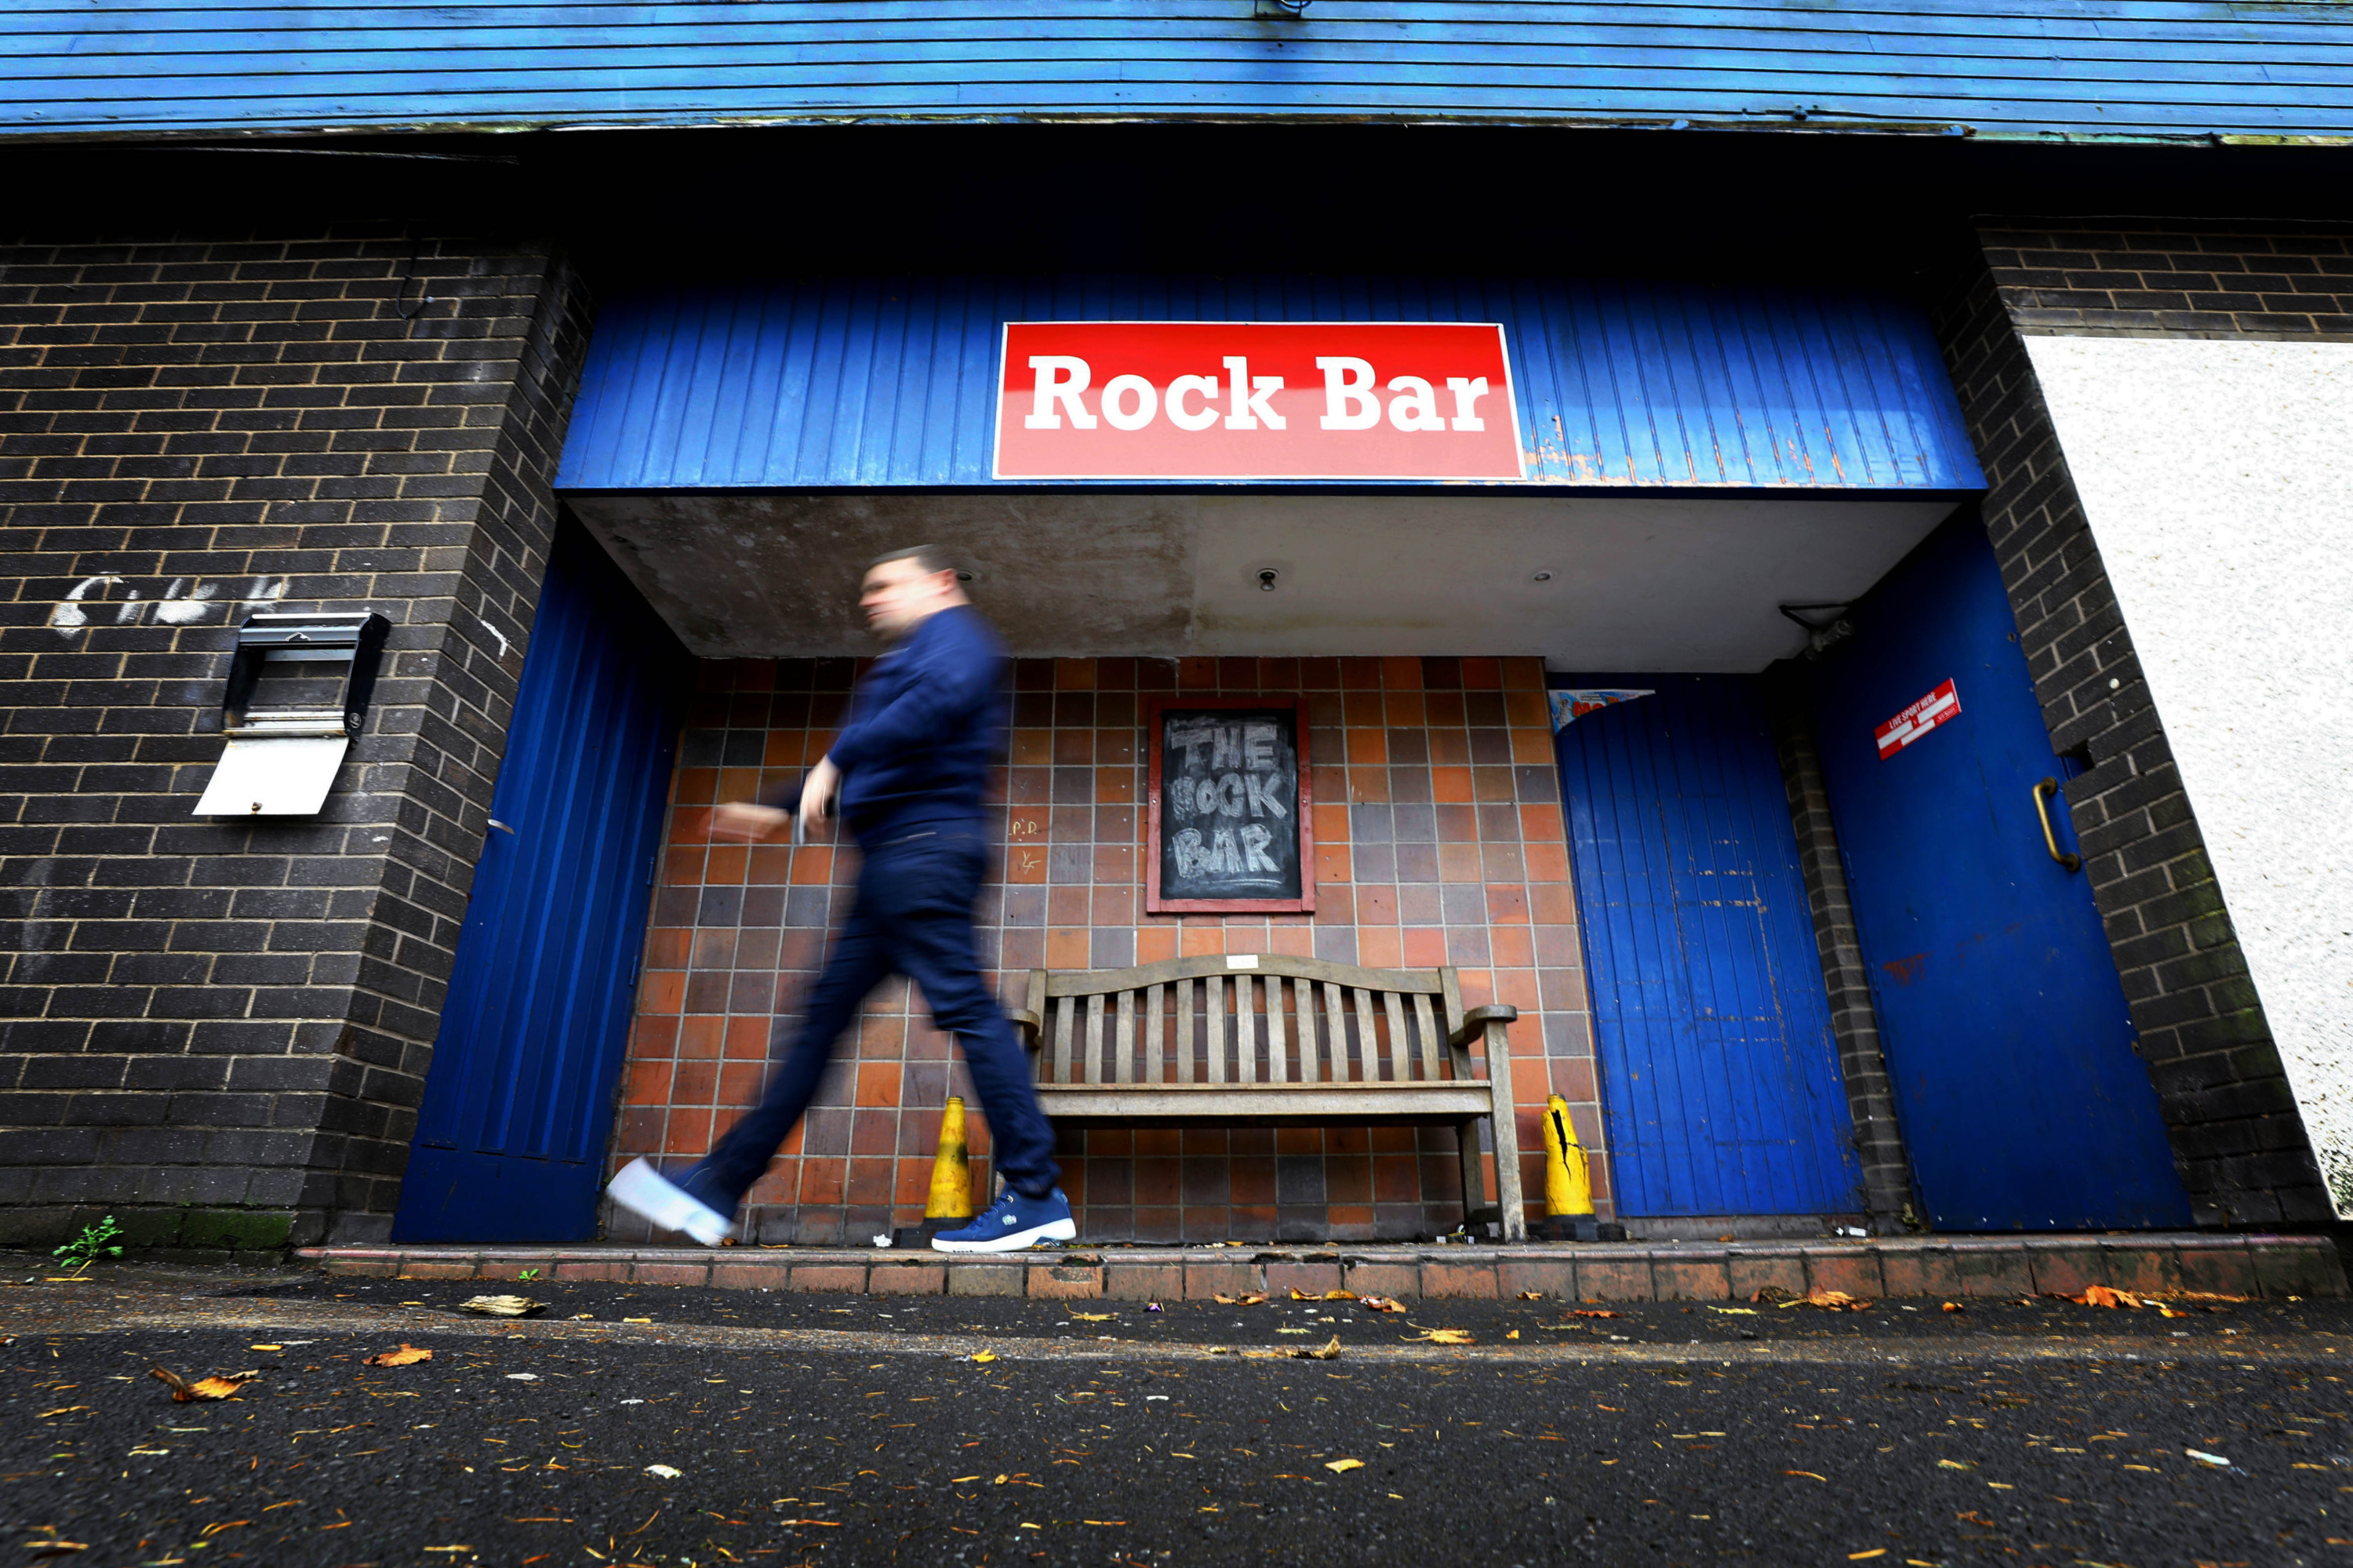 The Rock Bar in Menzieshill.